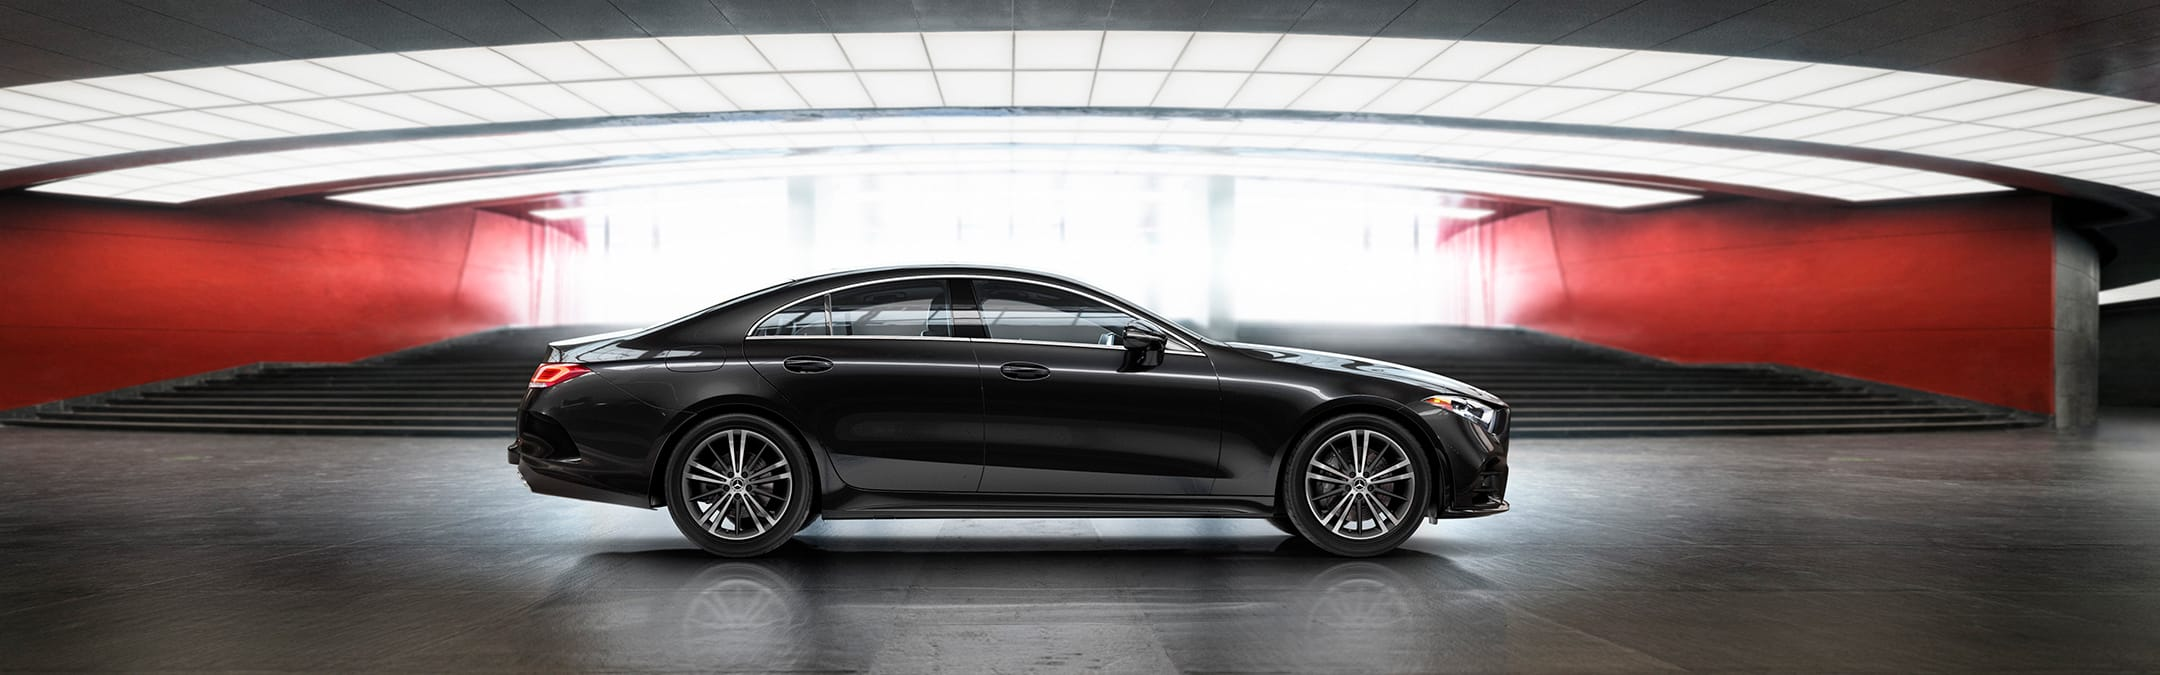 2019 CLS Coupe Design